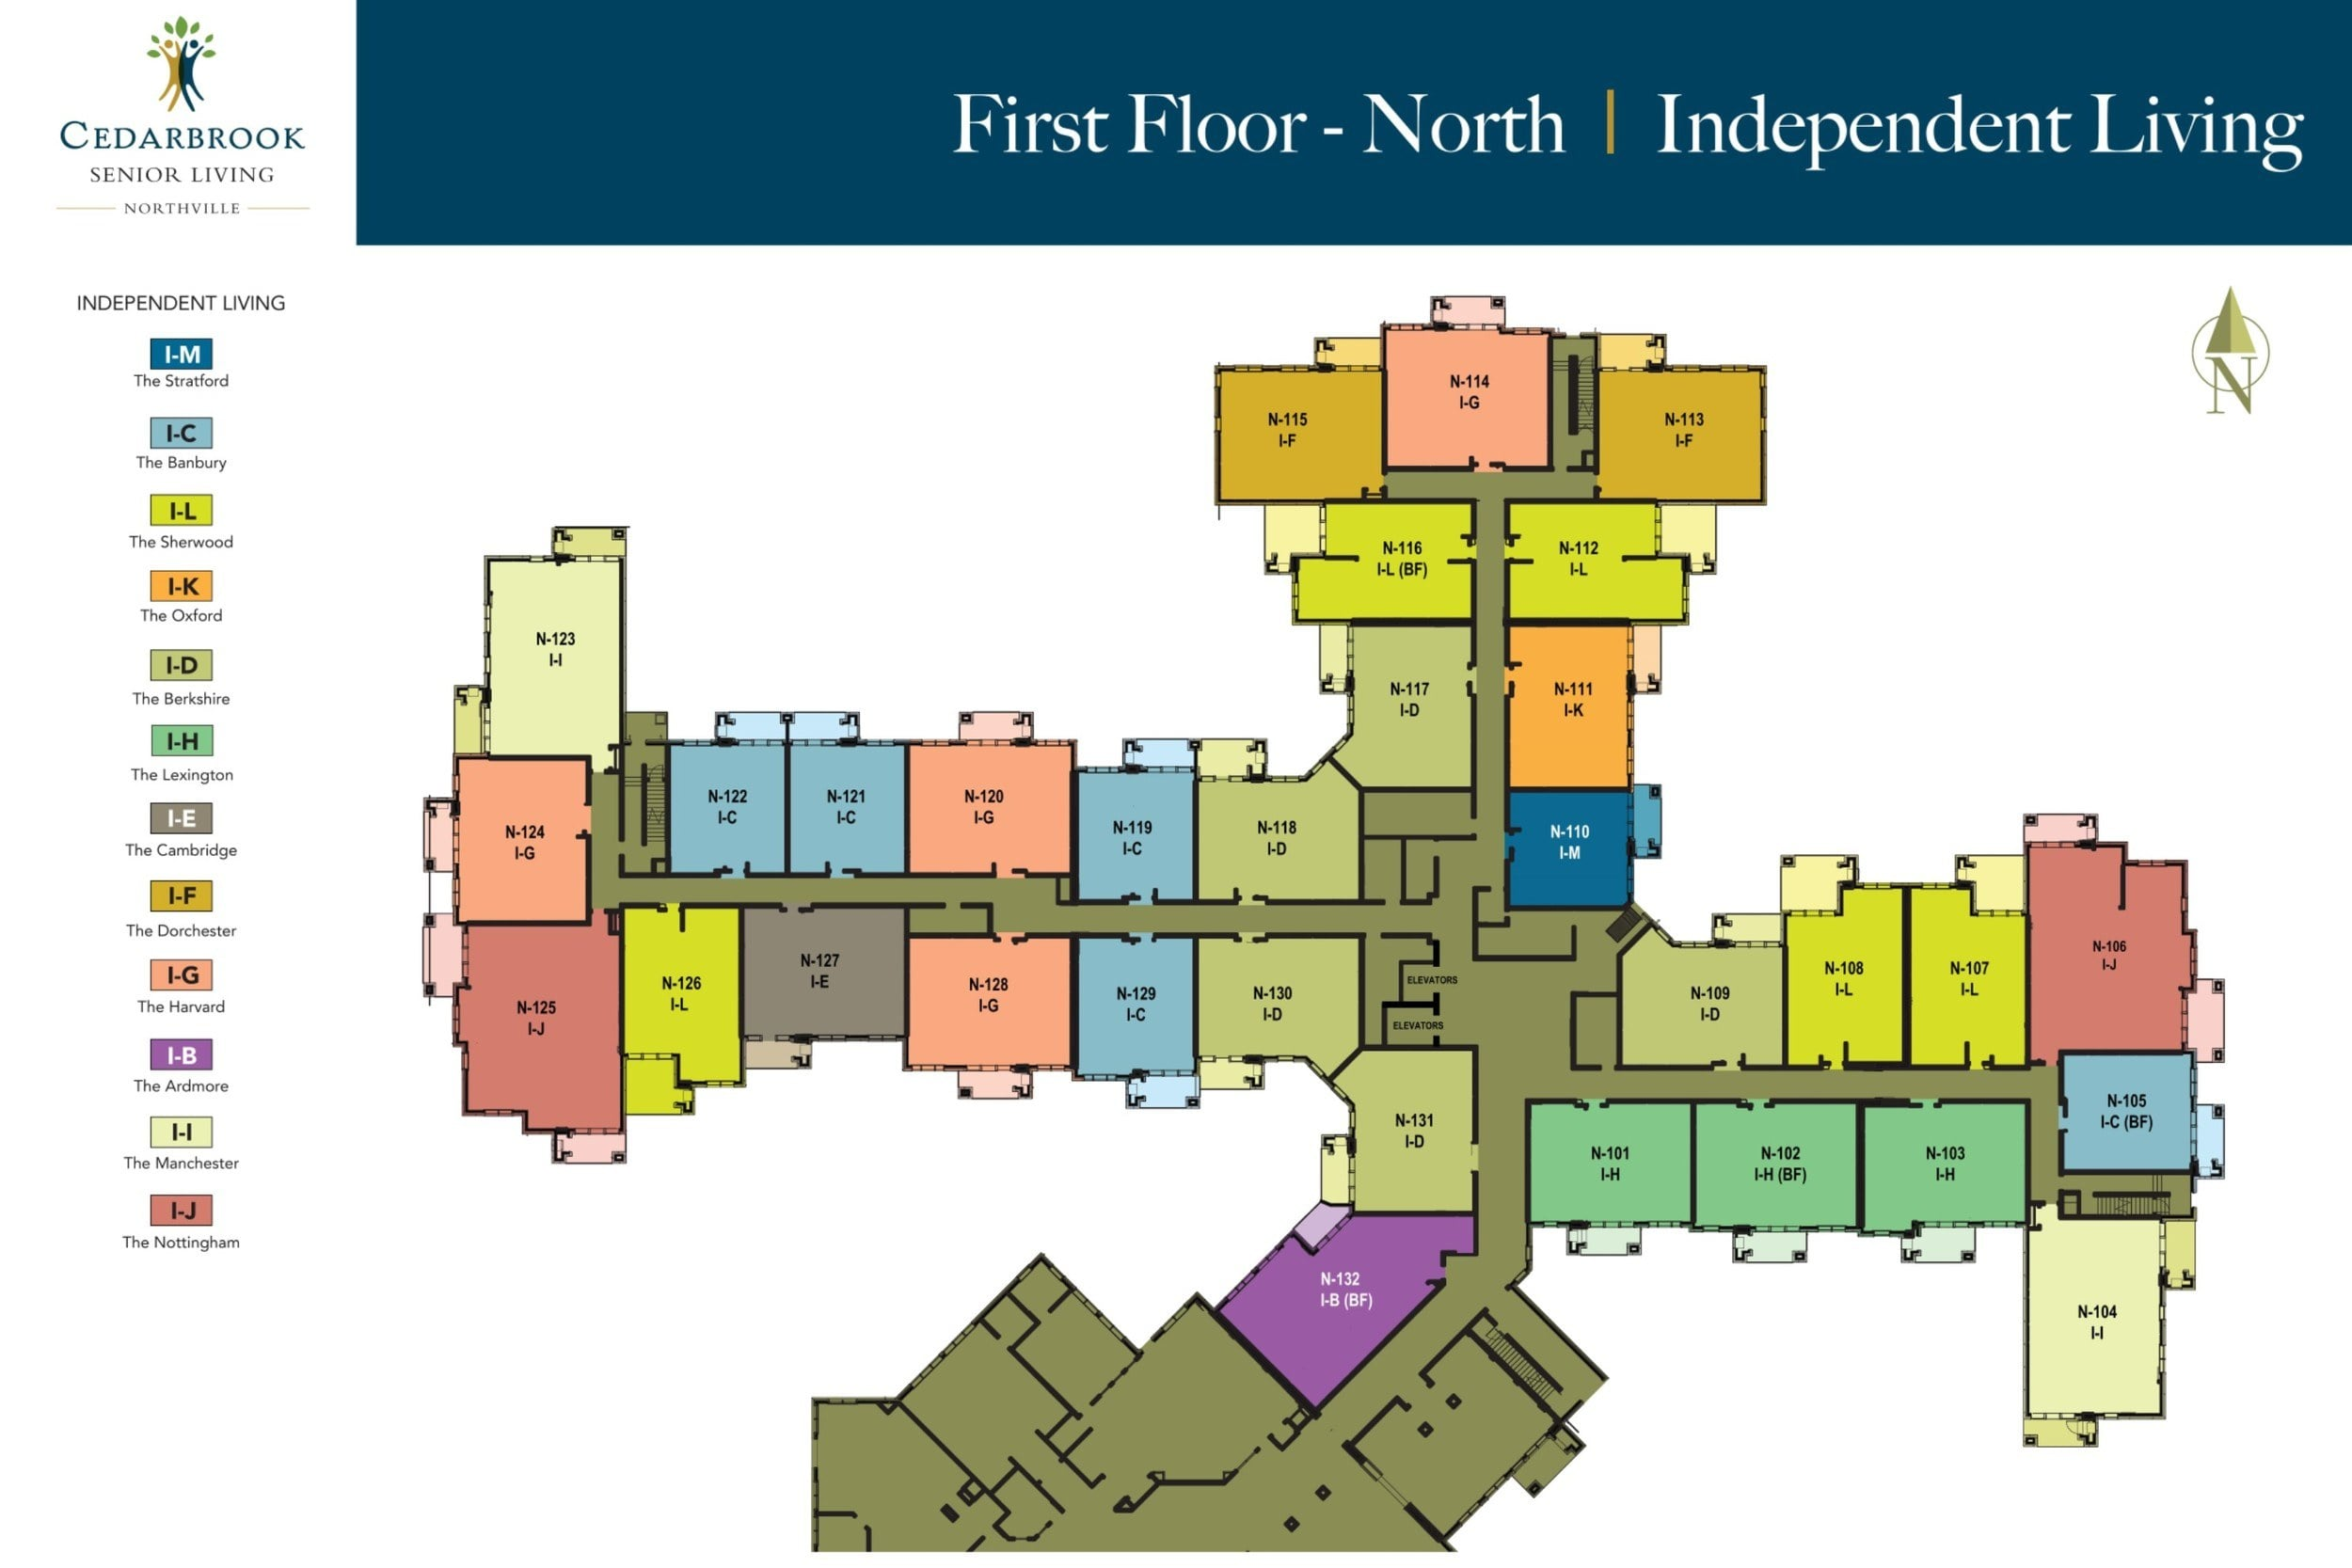 First Floor North - Independent Living